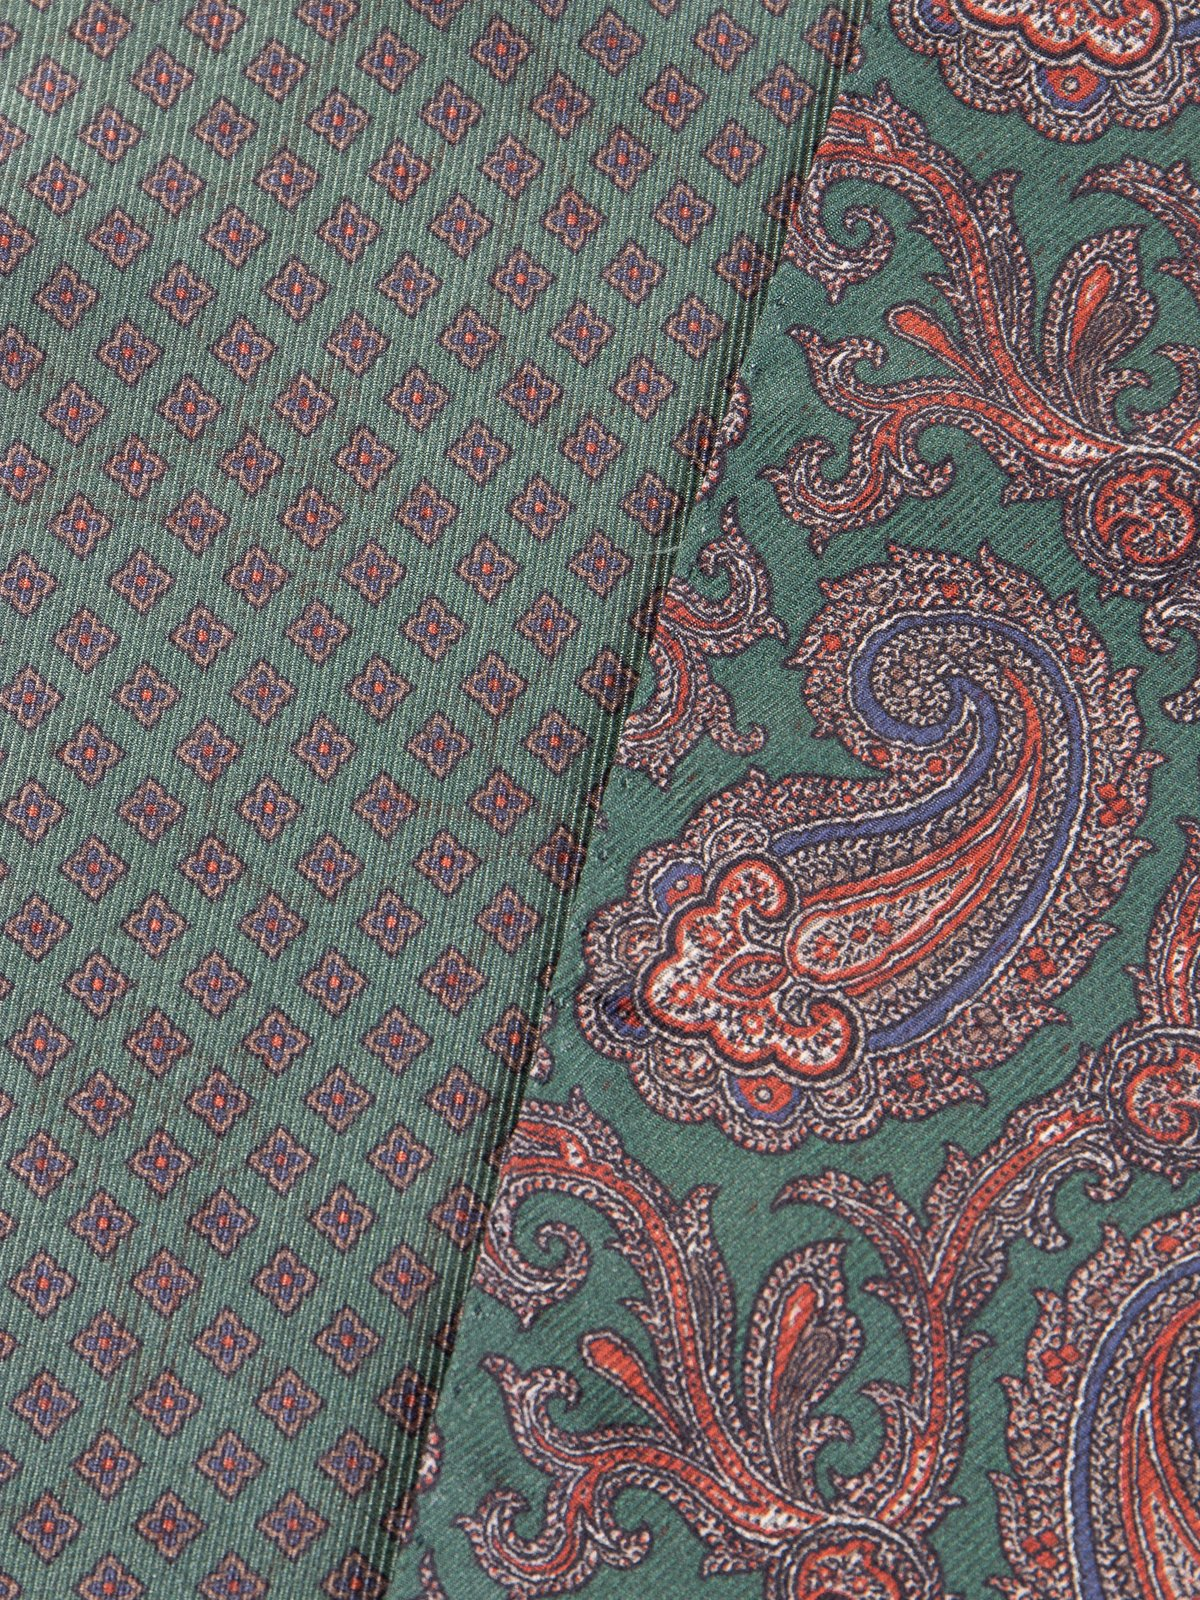 Green Double–Sided Silk Paisley Dress Scarf - Image 2